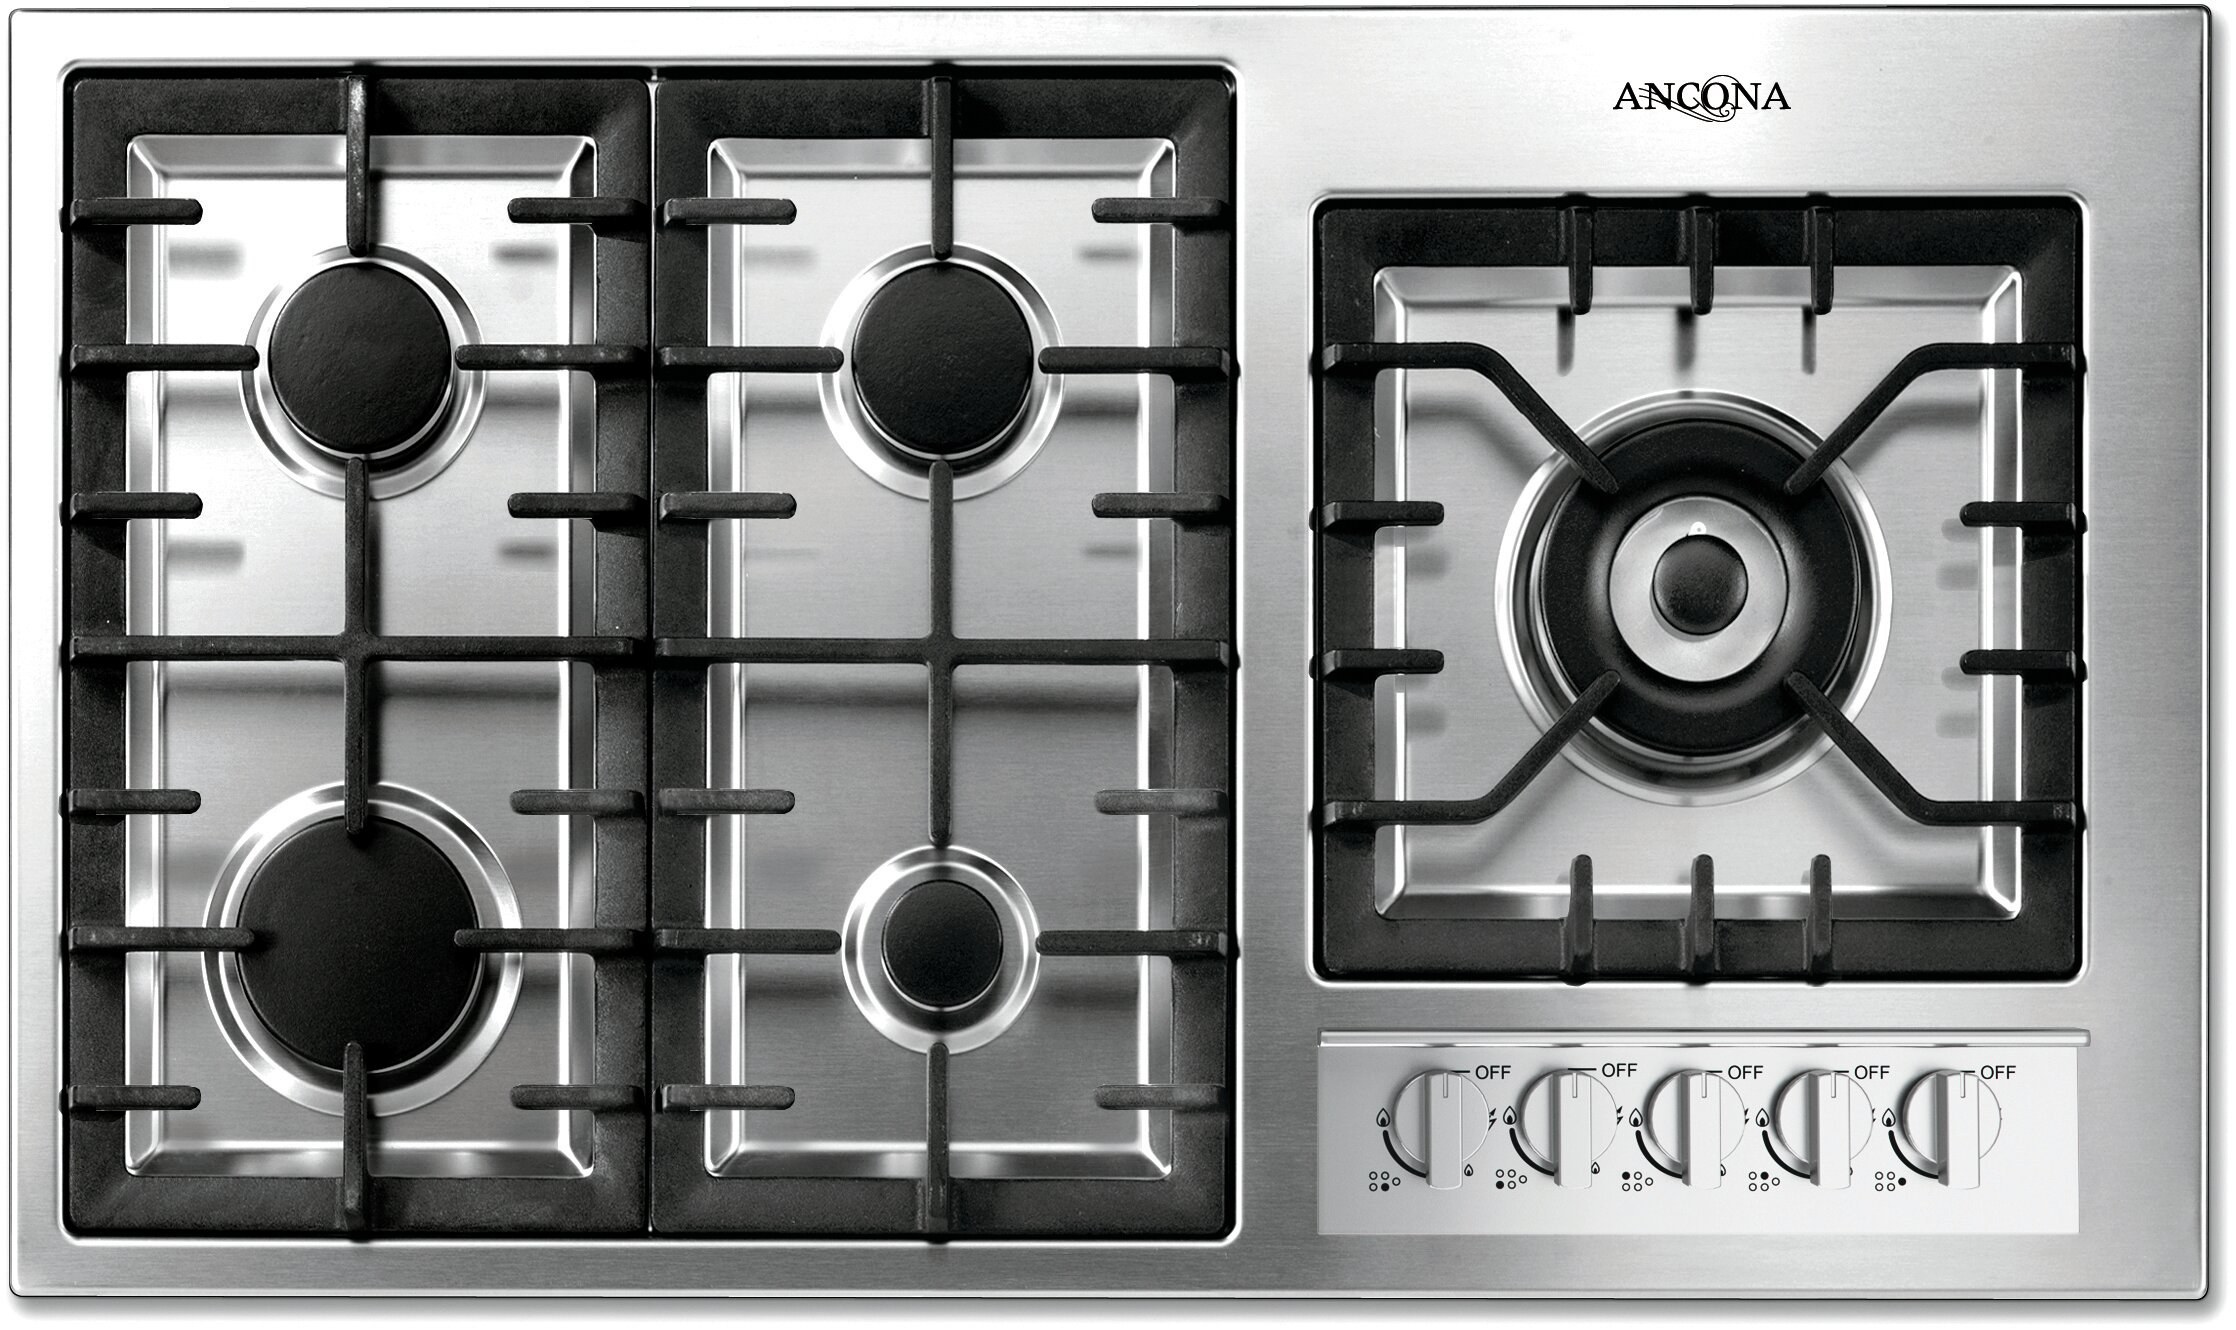 Ancona 36 Gas Cooktop With 5 Burners And Wok Pan Support Reviews Wayfair